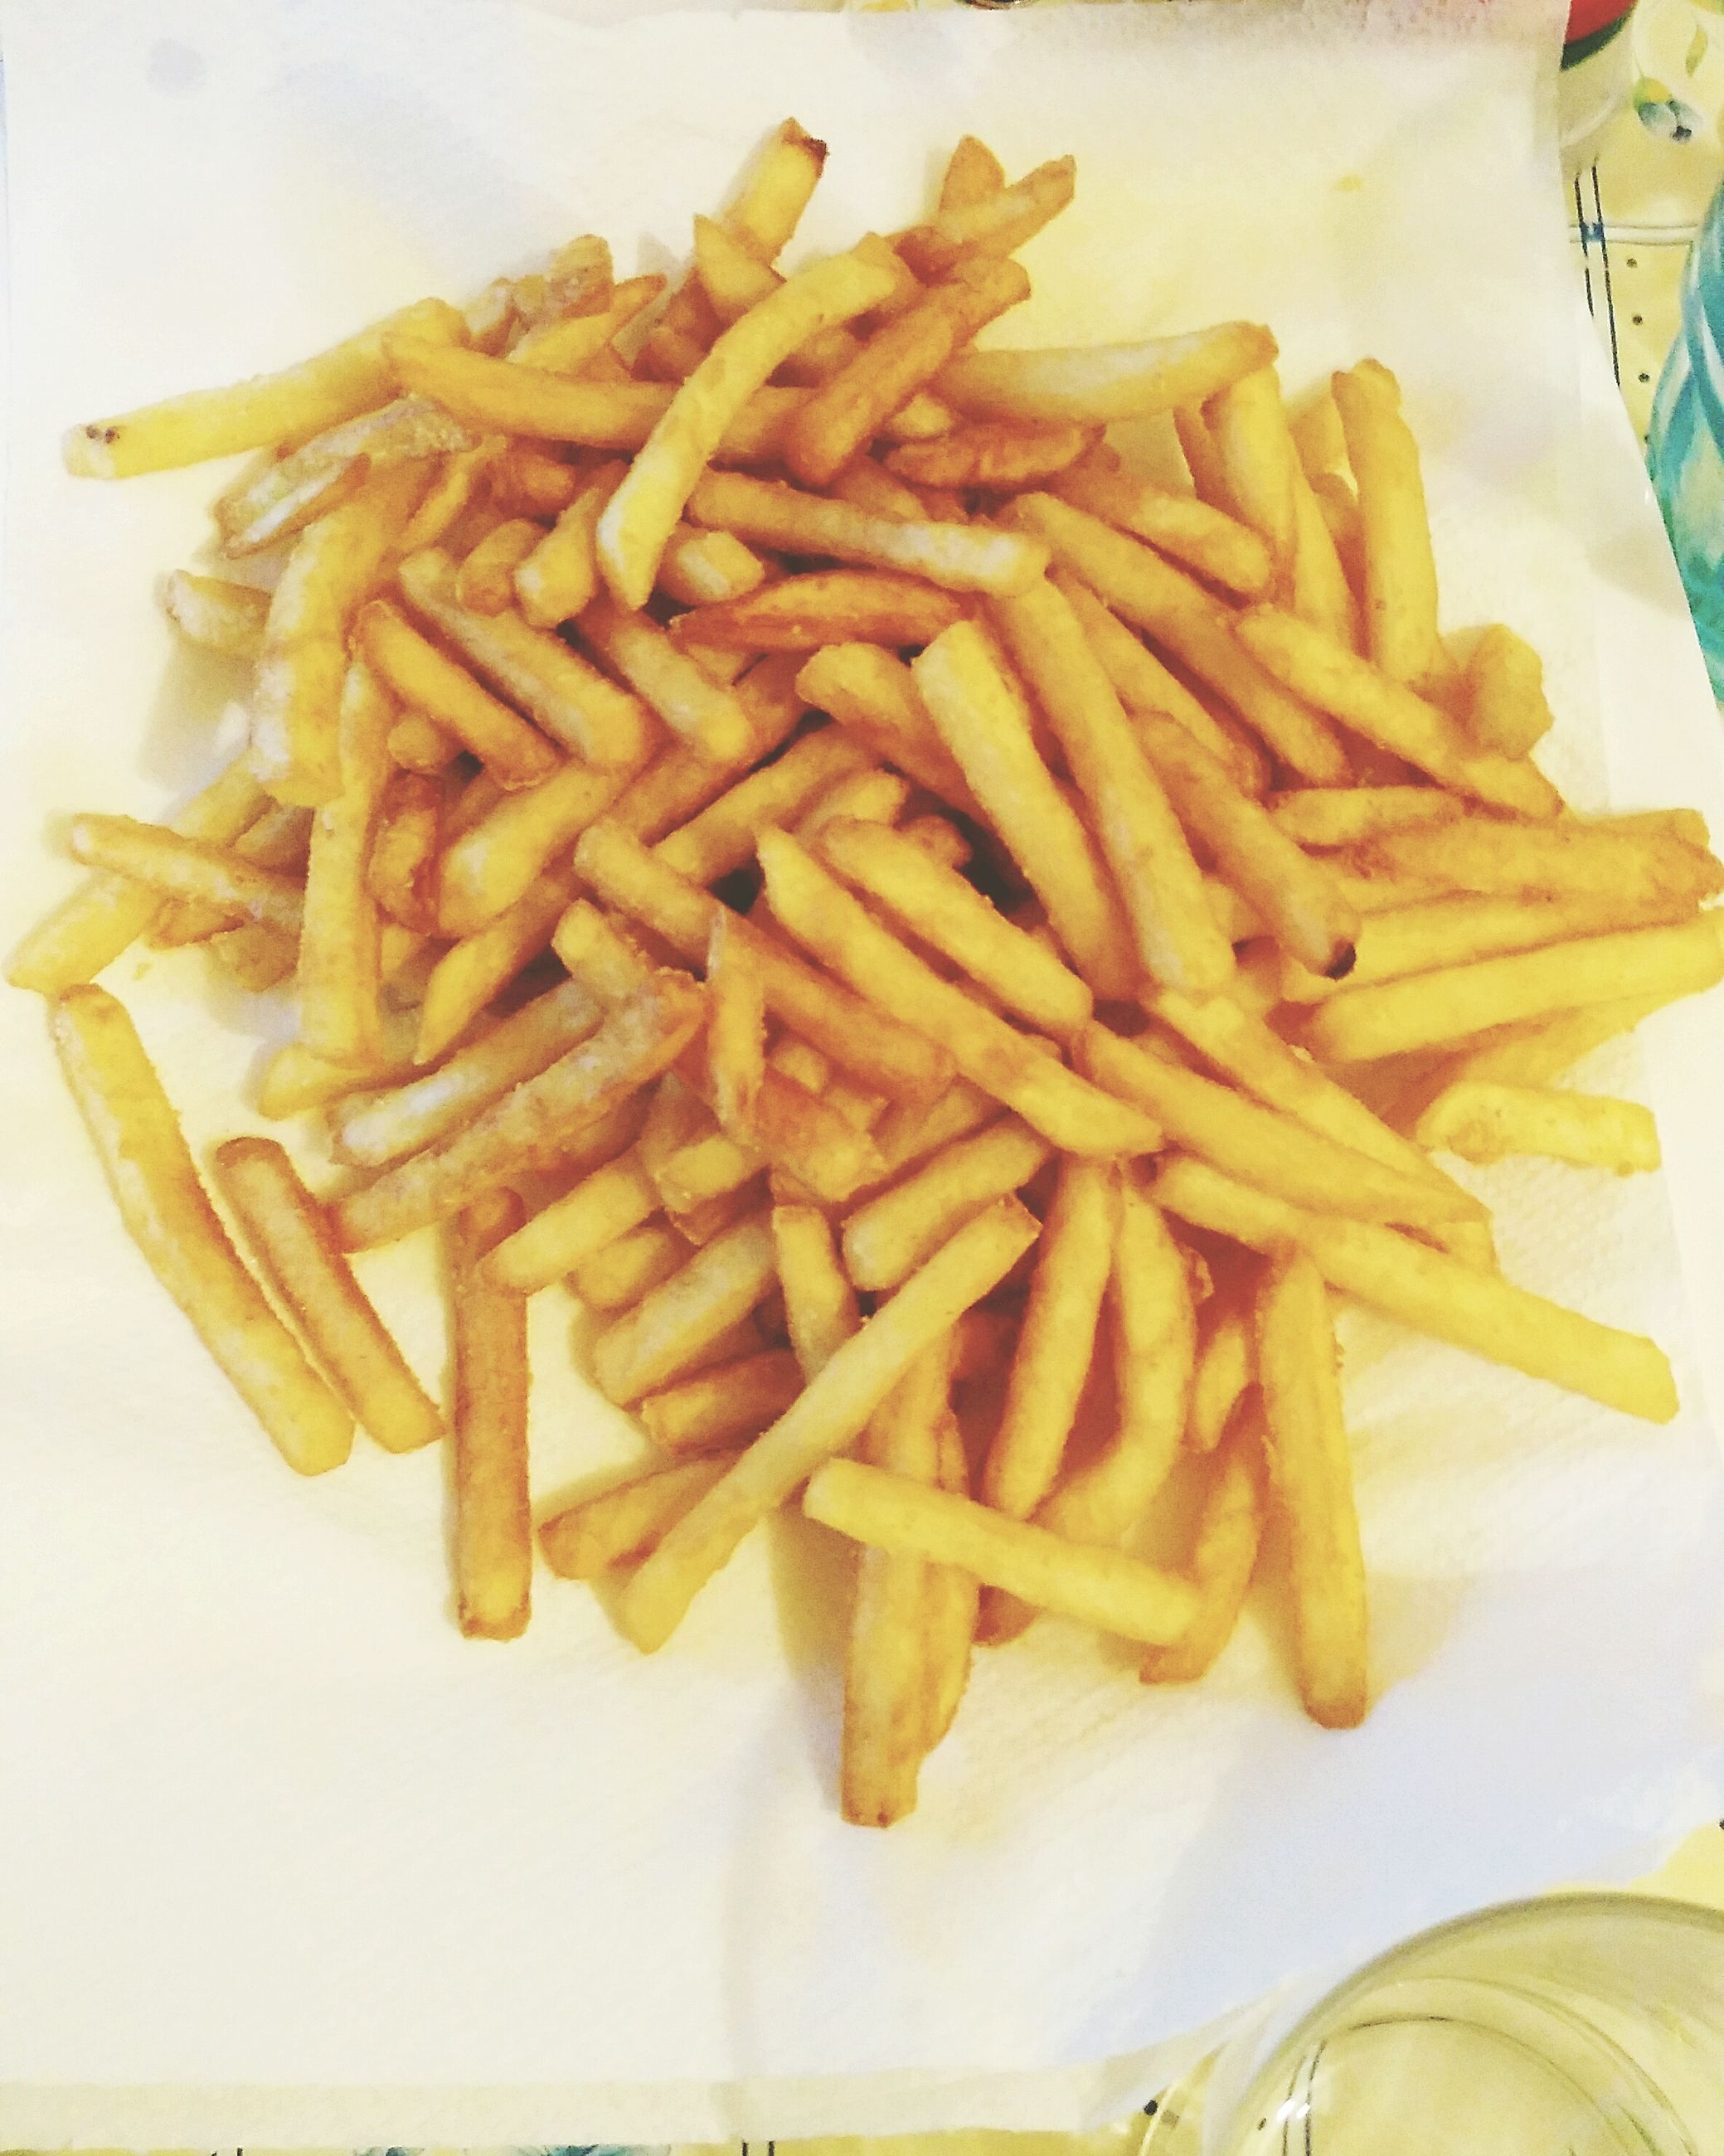 food, food and drink, freshness, indoors, ready-to-eat, still life, french fries, close-up, unhealthy eating, plate, high angle view, fast food, indulgence, fried, meal, table, prepared potato, deep fried, snack